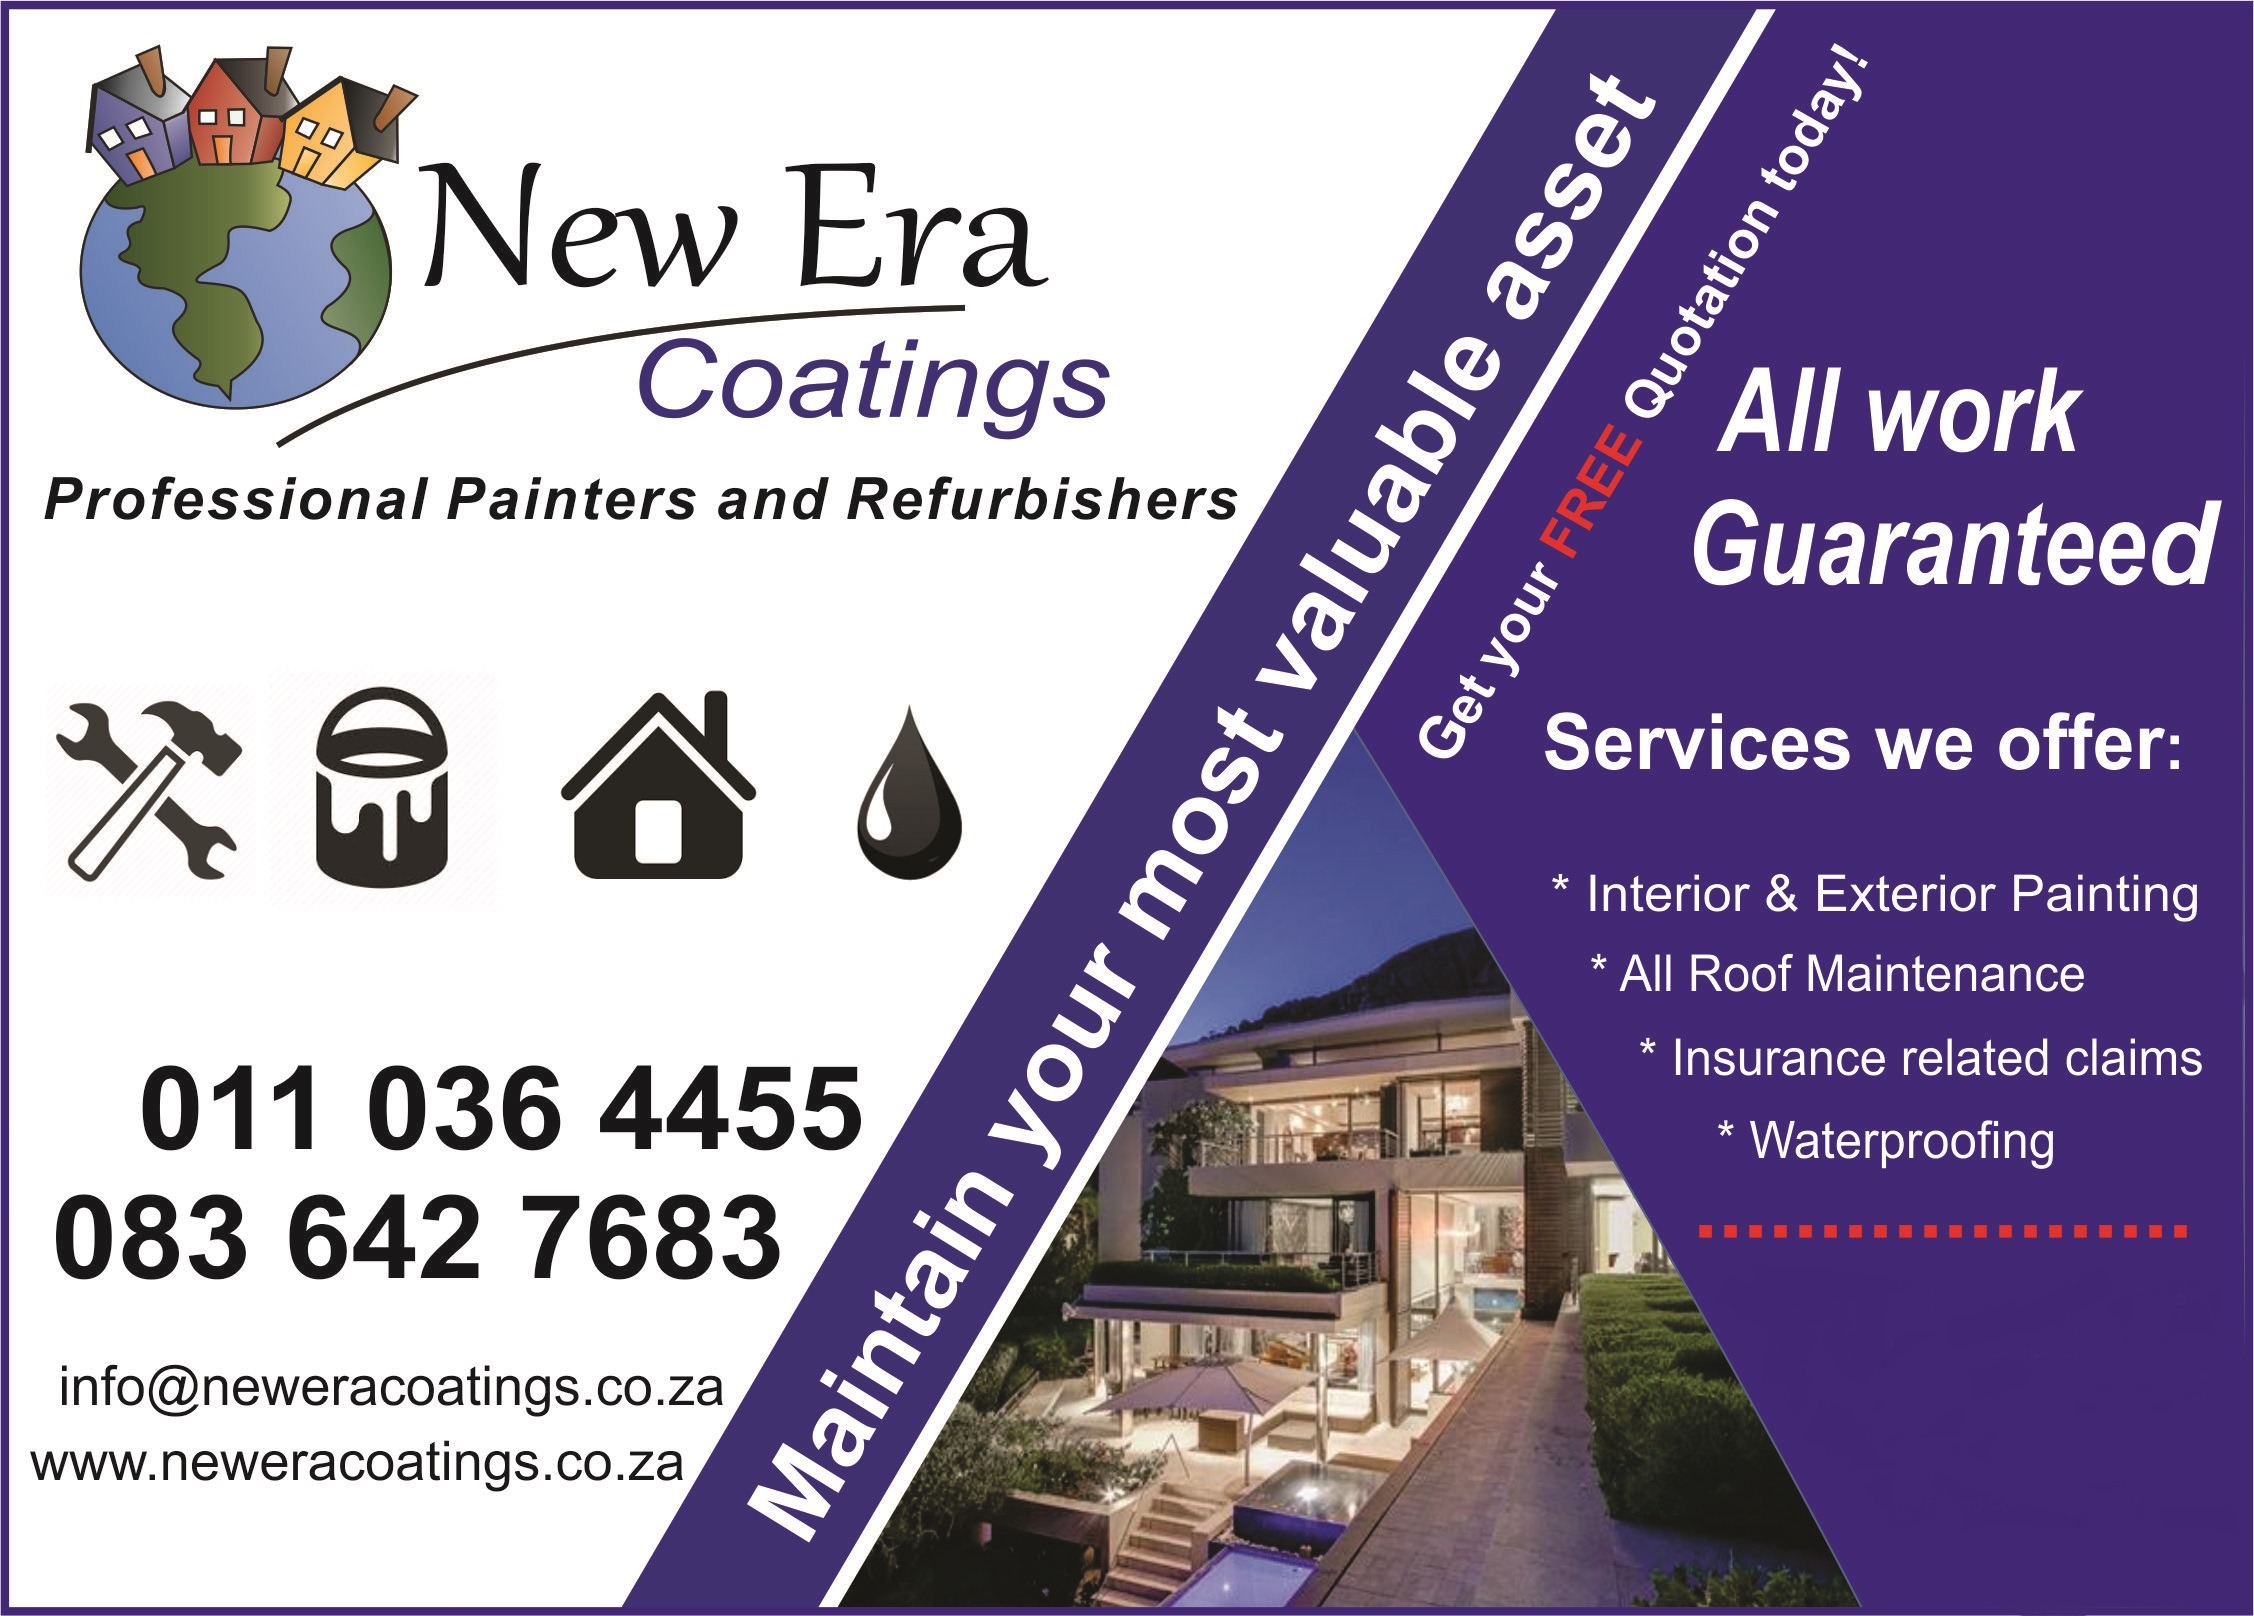 Roofing and painting Contractors ( Cape Town and JHB)